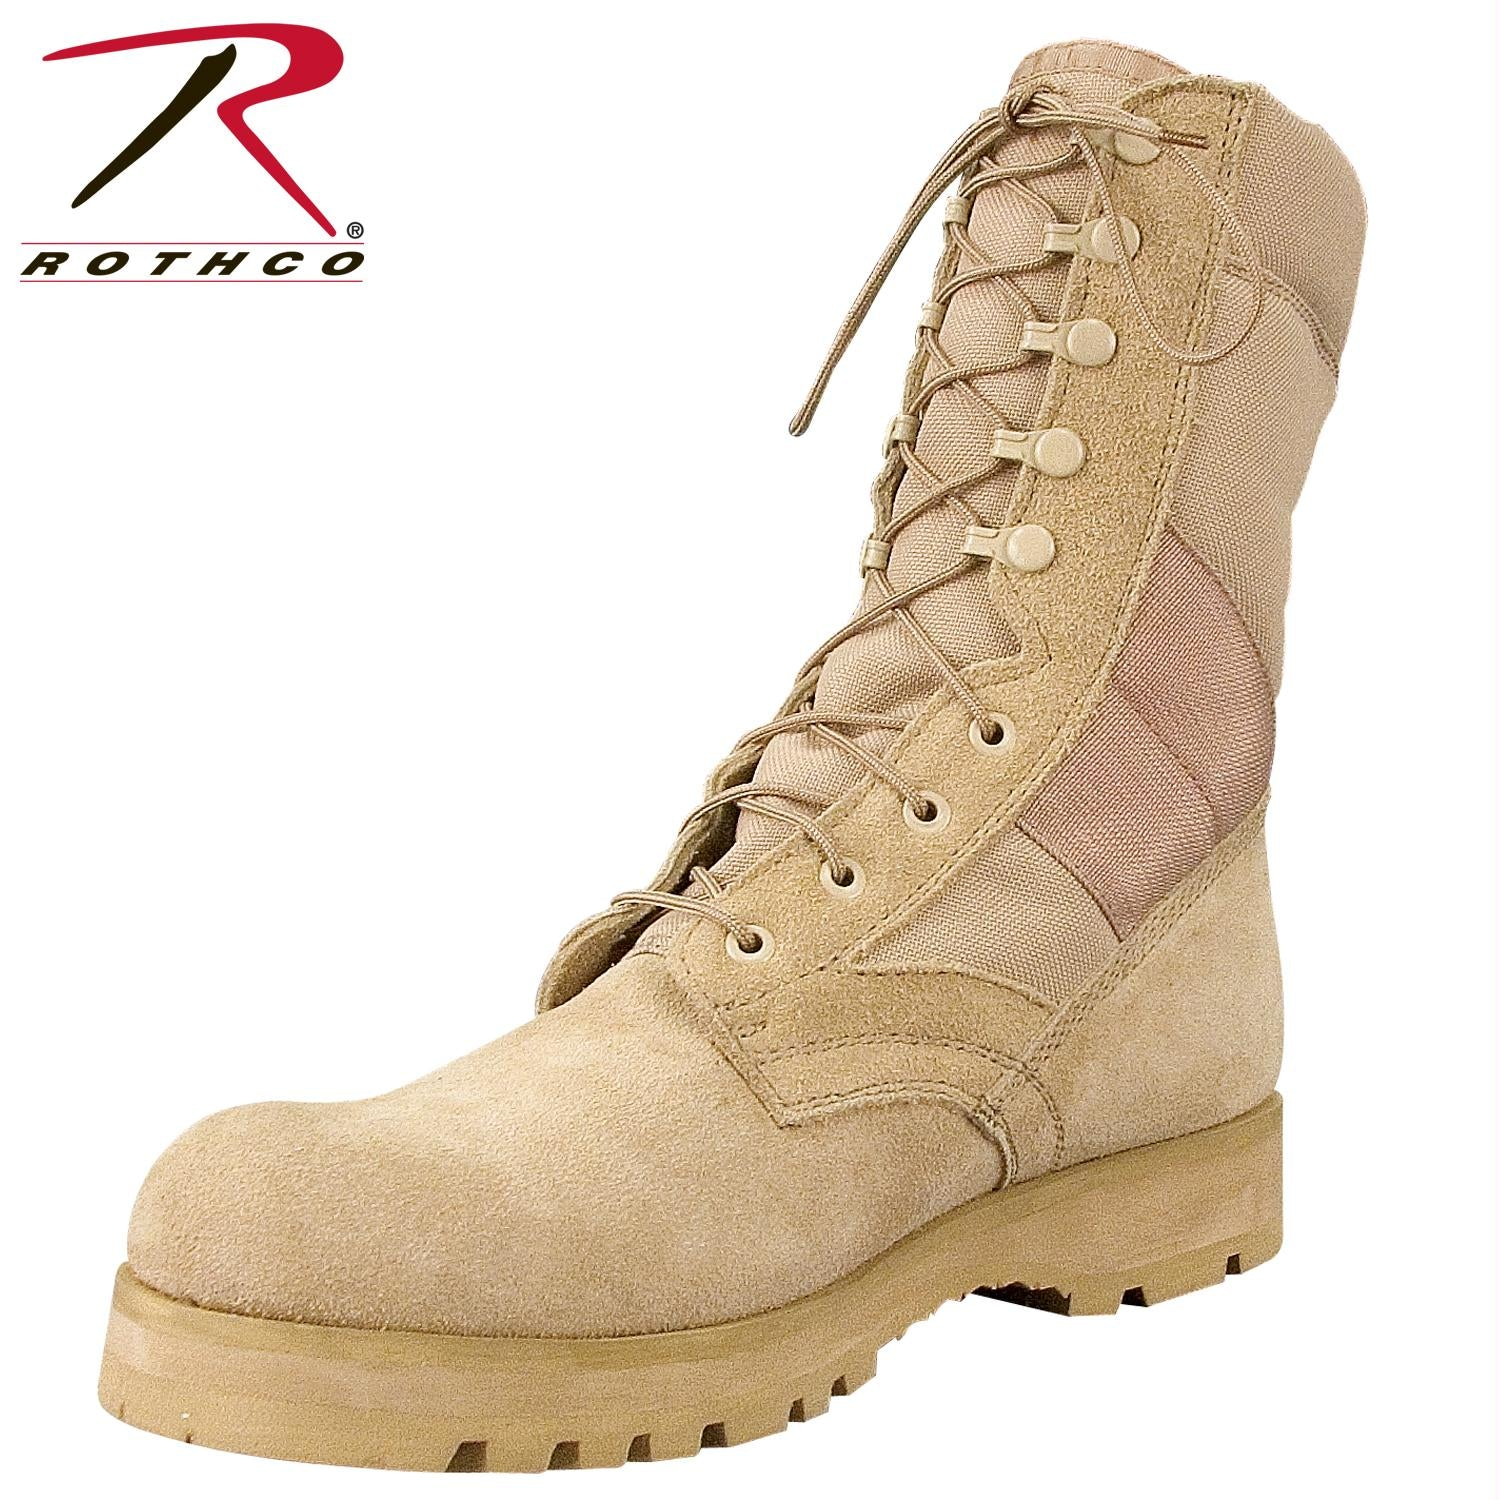 Rothco G.I. Type Sierra Sole Tactical Boots - Desert Tan / 13 / Wide